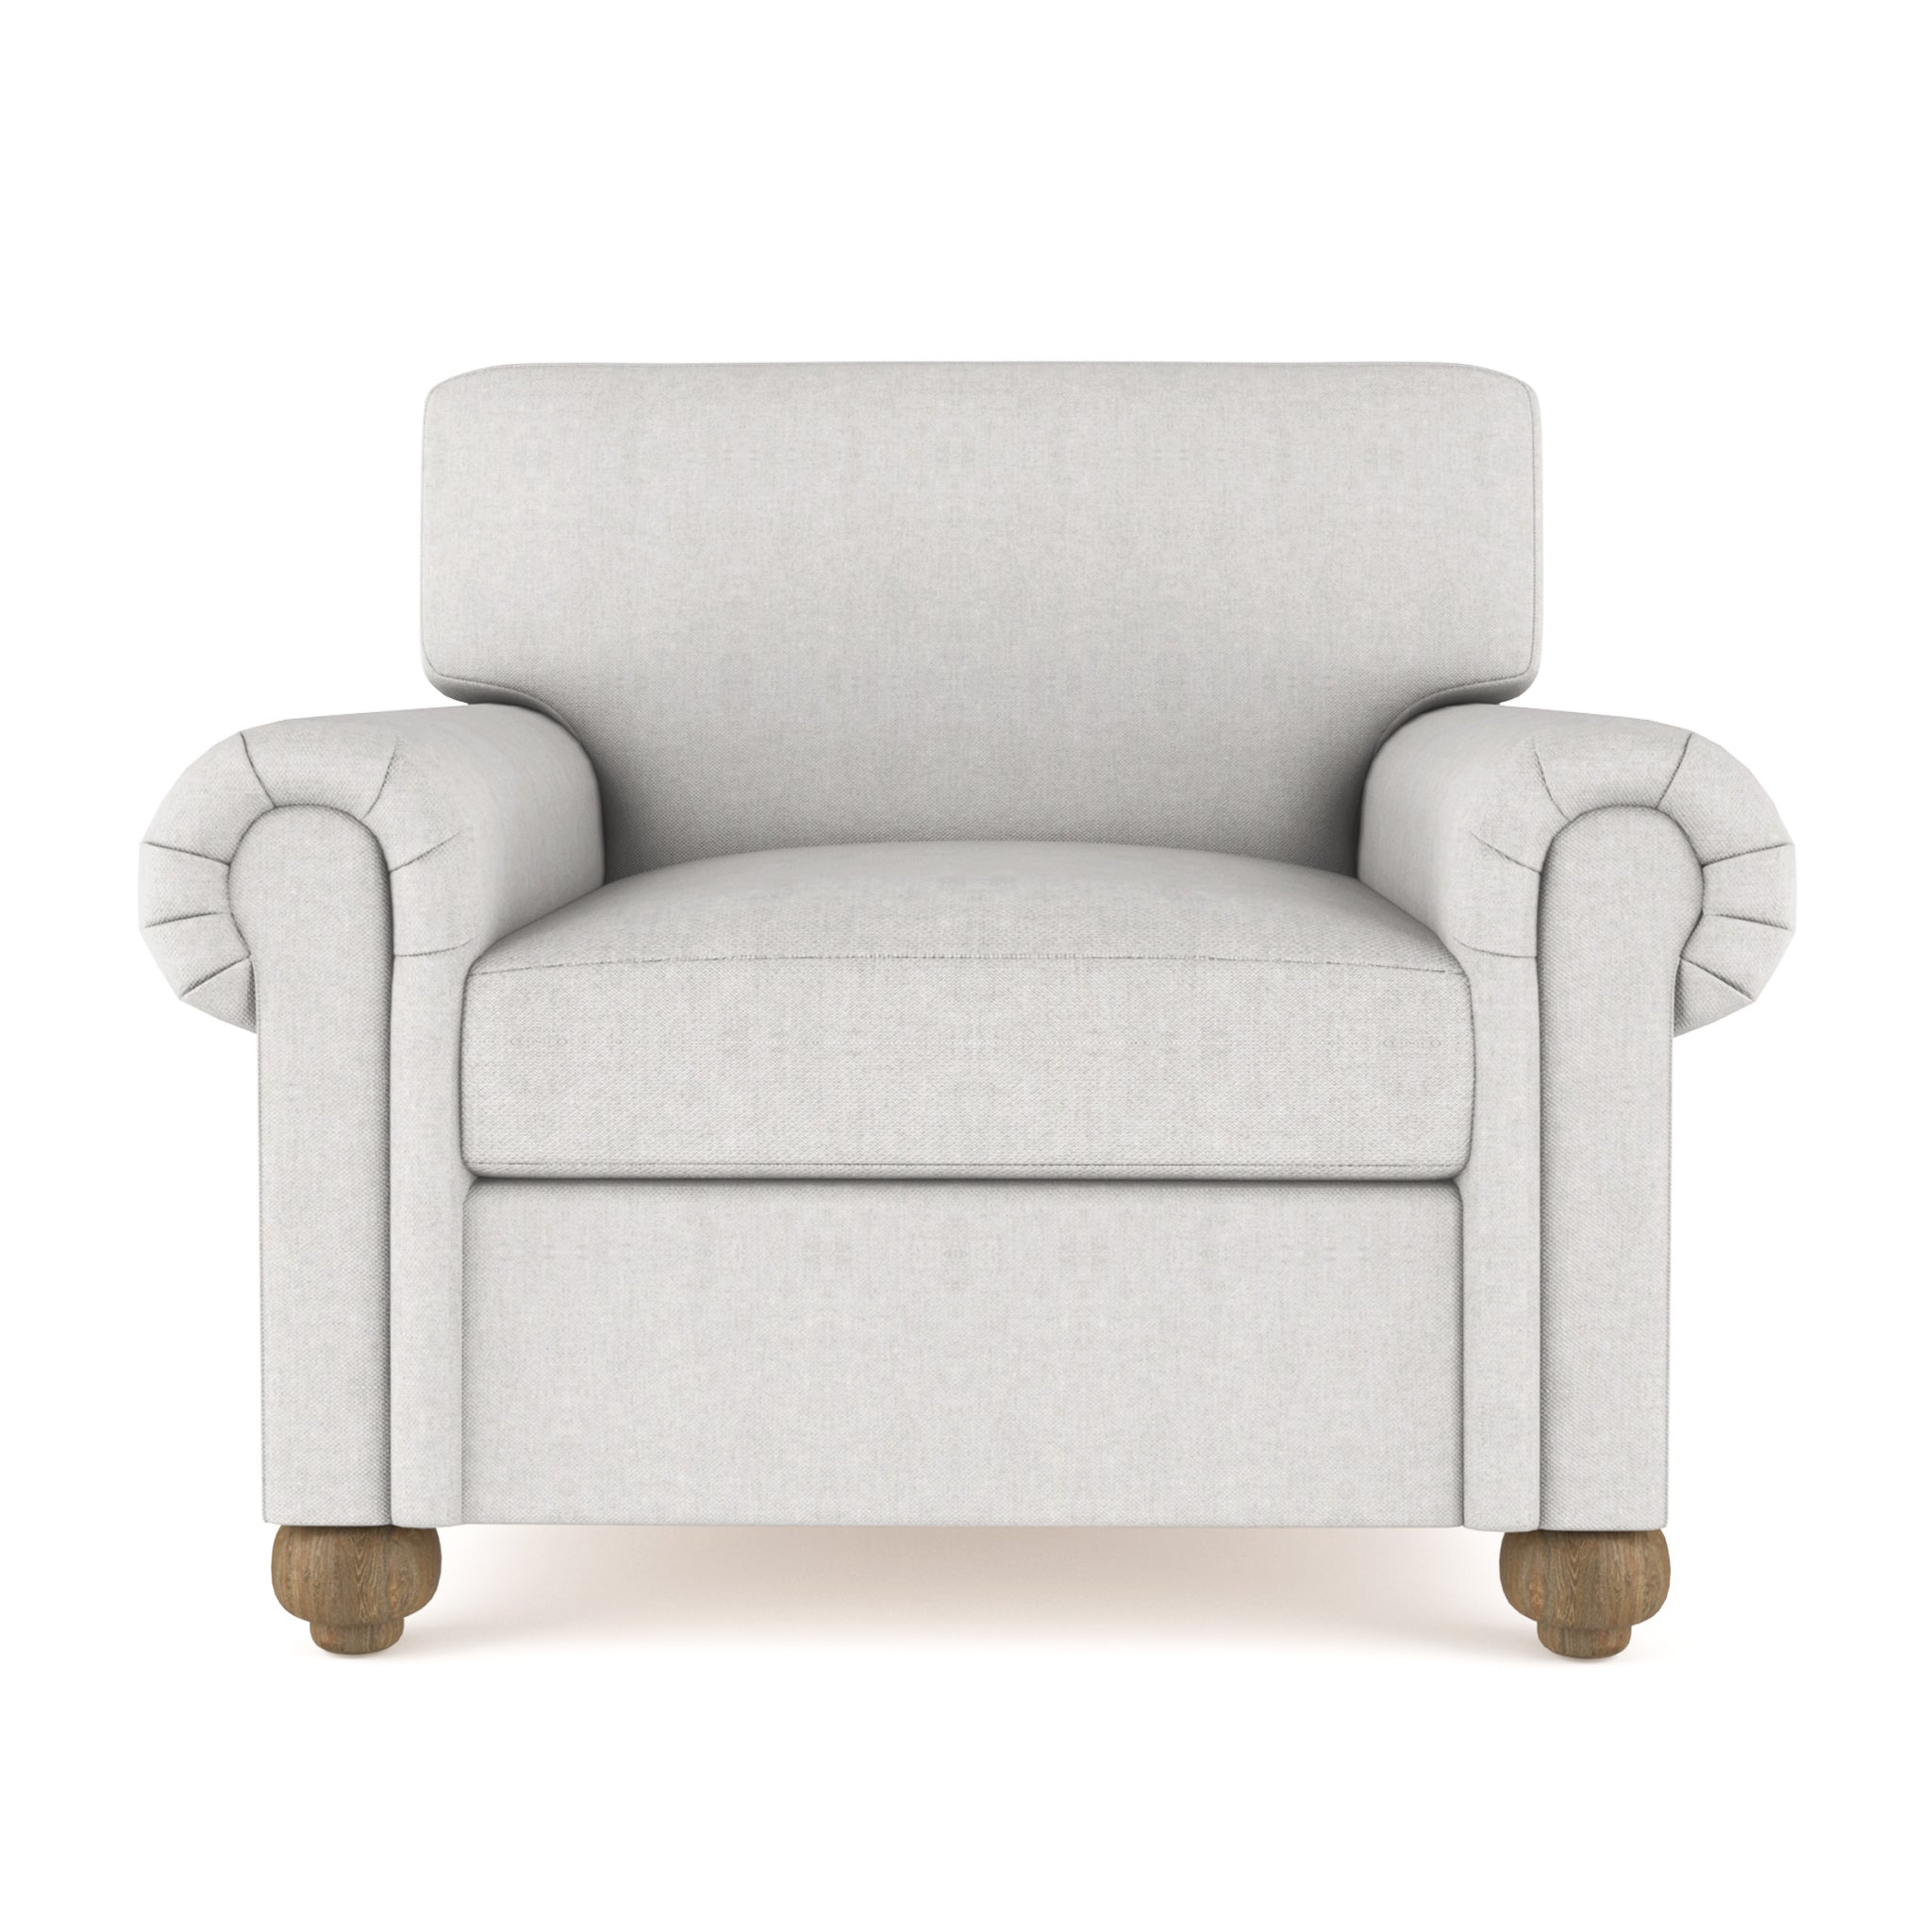 Leroy Chair - Silver Streak Plush Velvet